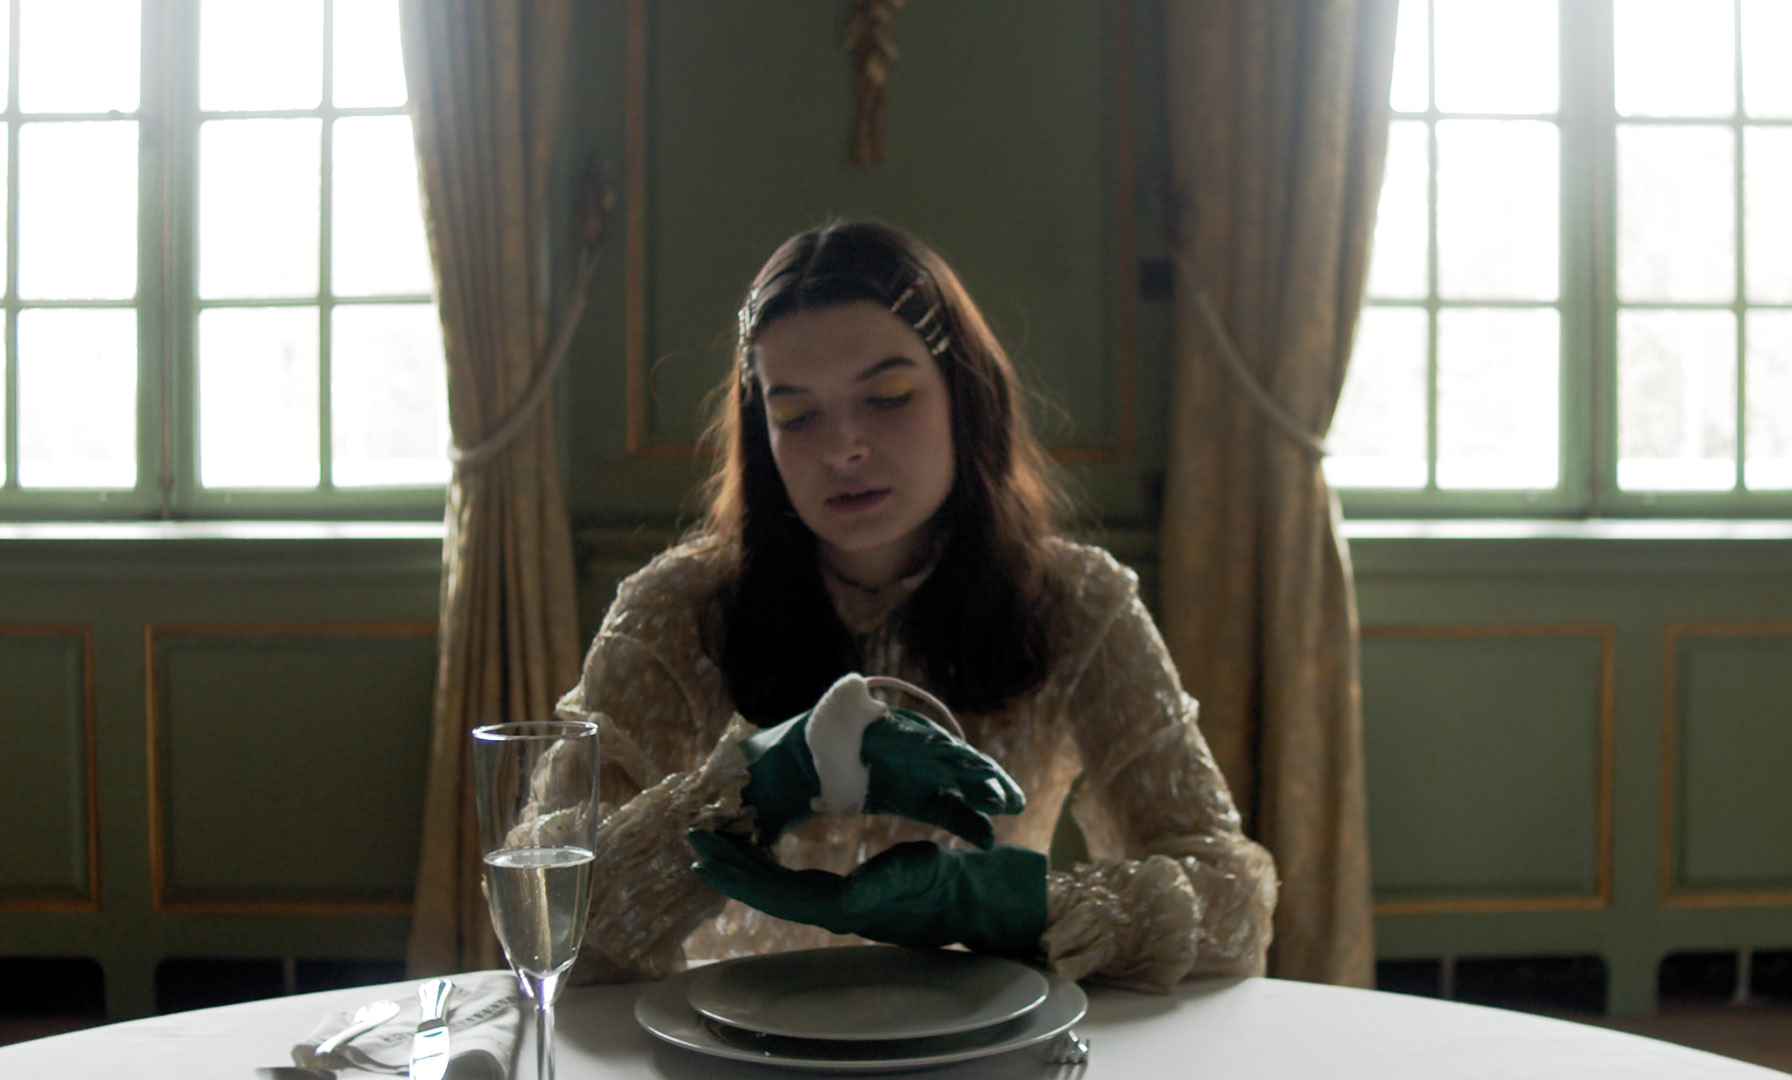 A young woman sitting at the table of an opulent green dining room, holding a white mouse in her hand.